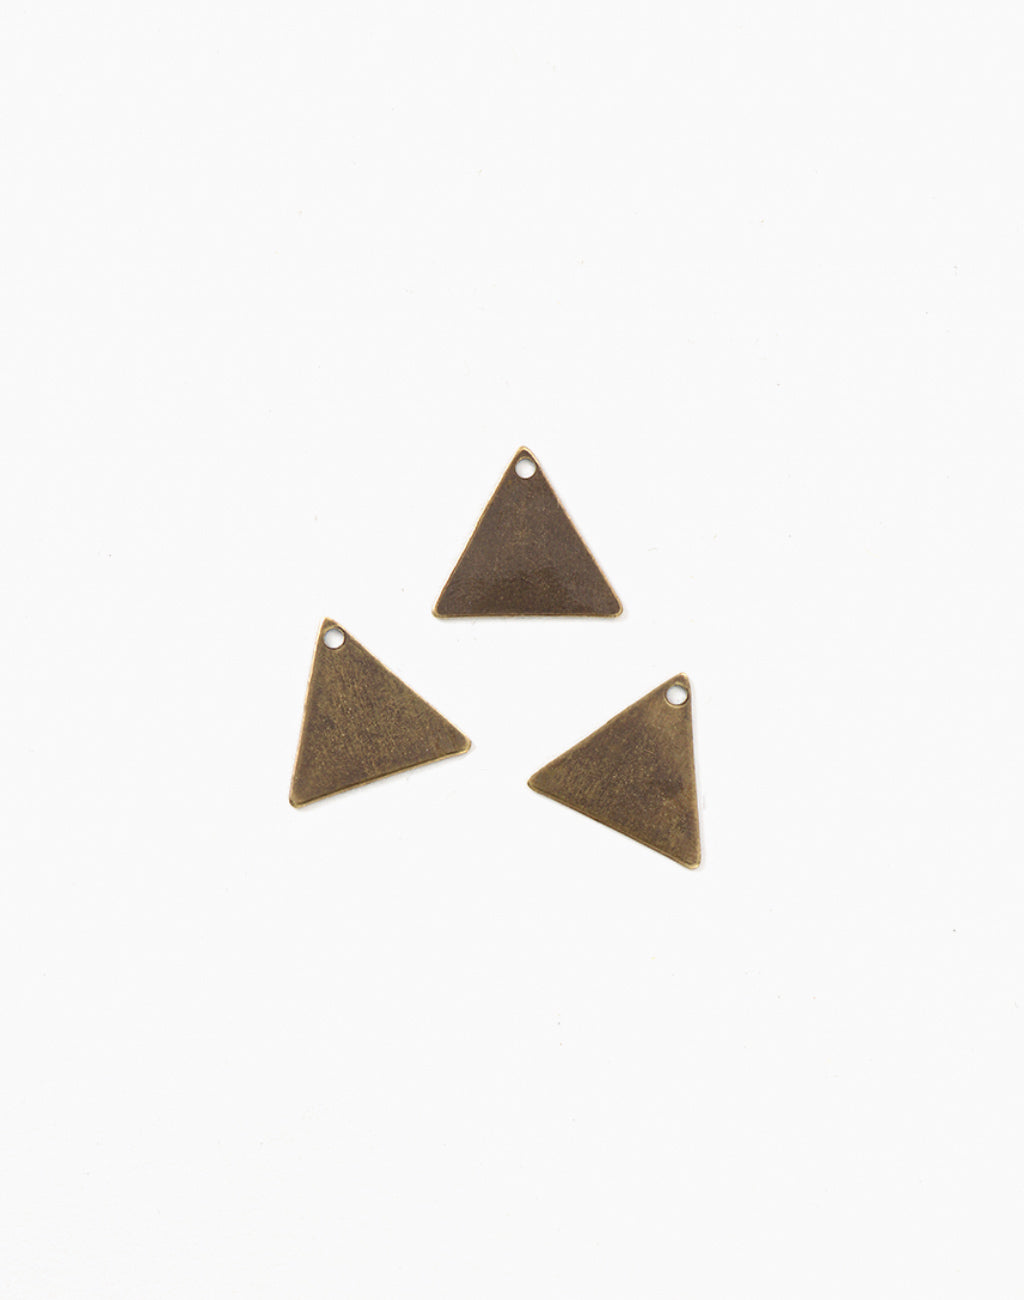 Triangle Blank, 14mm, (3pcs)